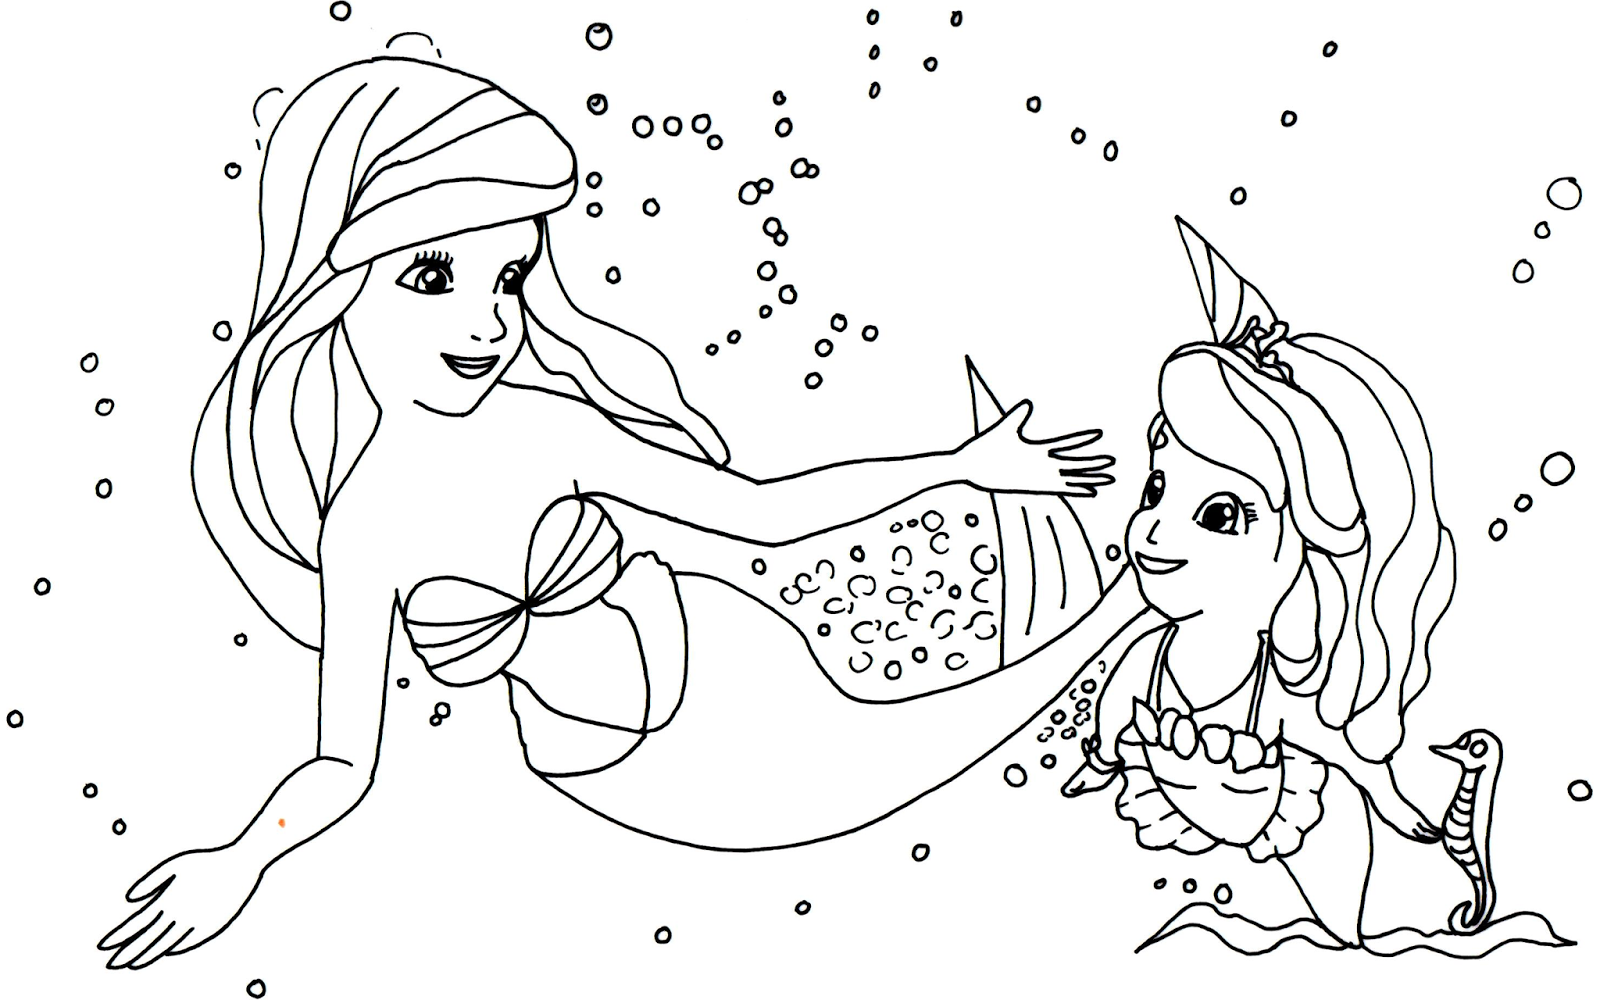 Sofia The First Coloring Pages: Princess Ariel and Sofia the First ...